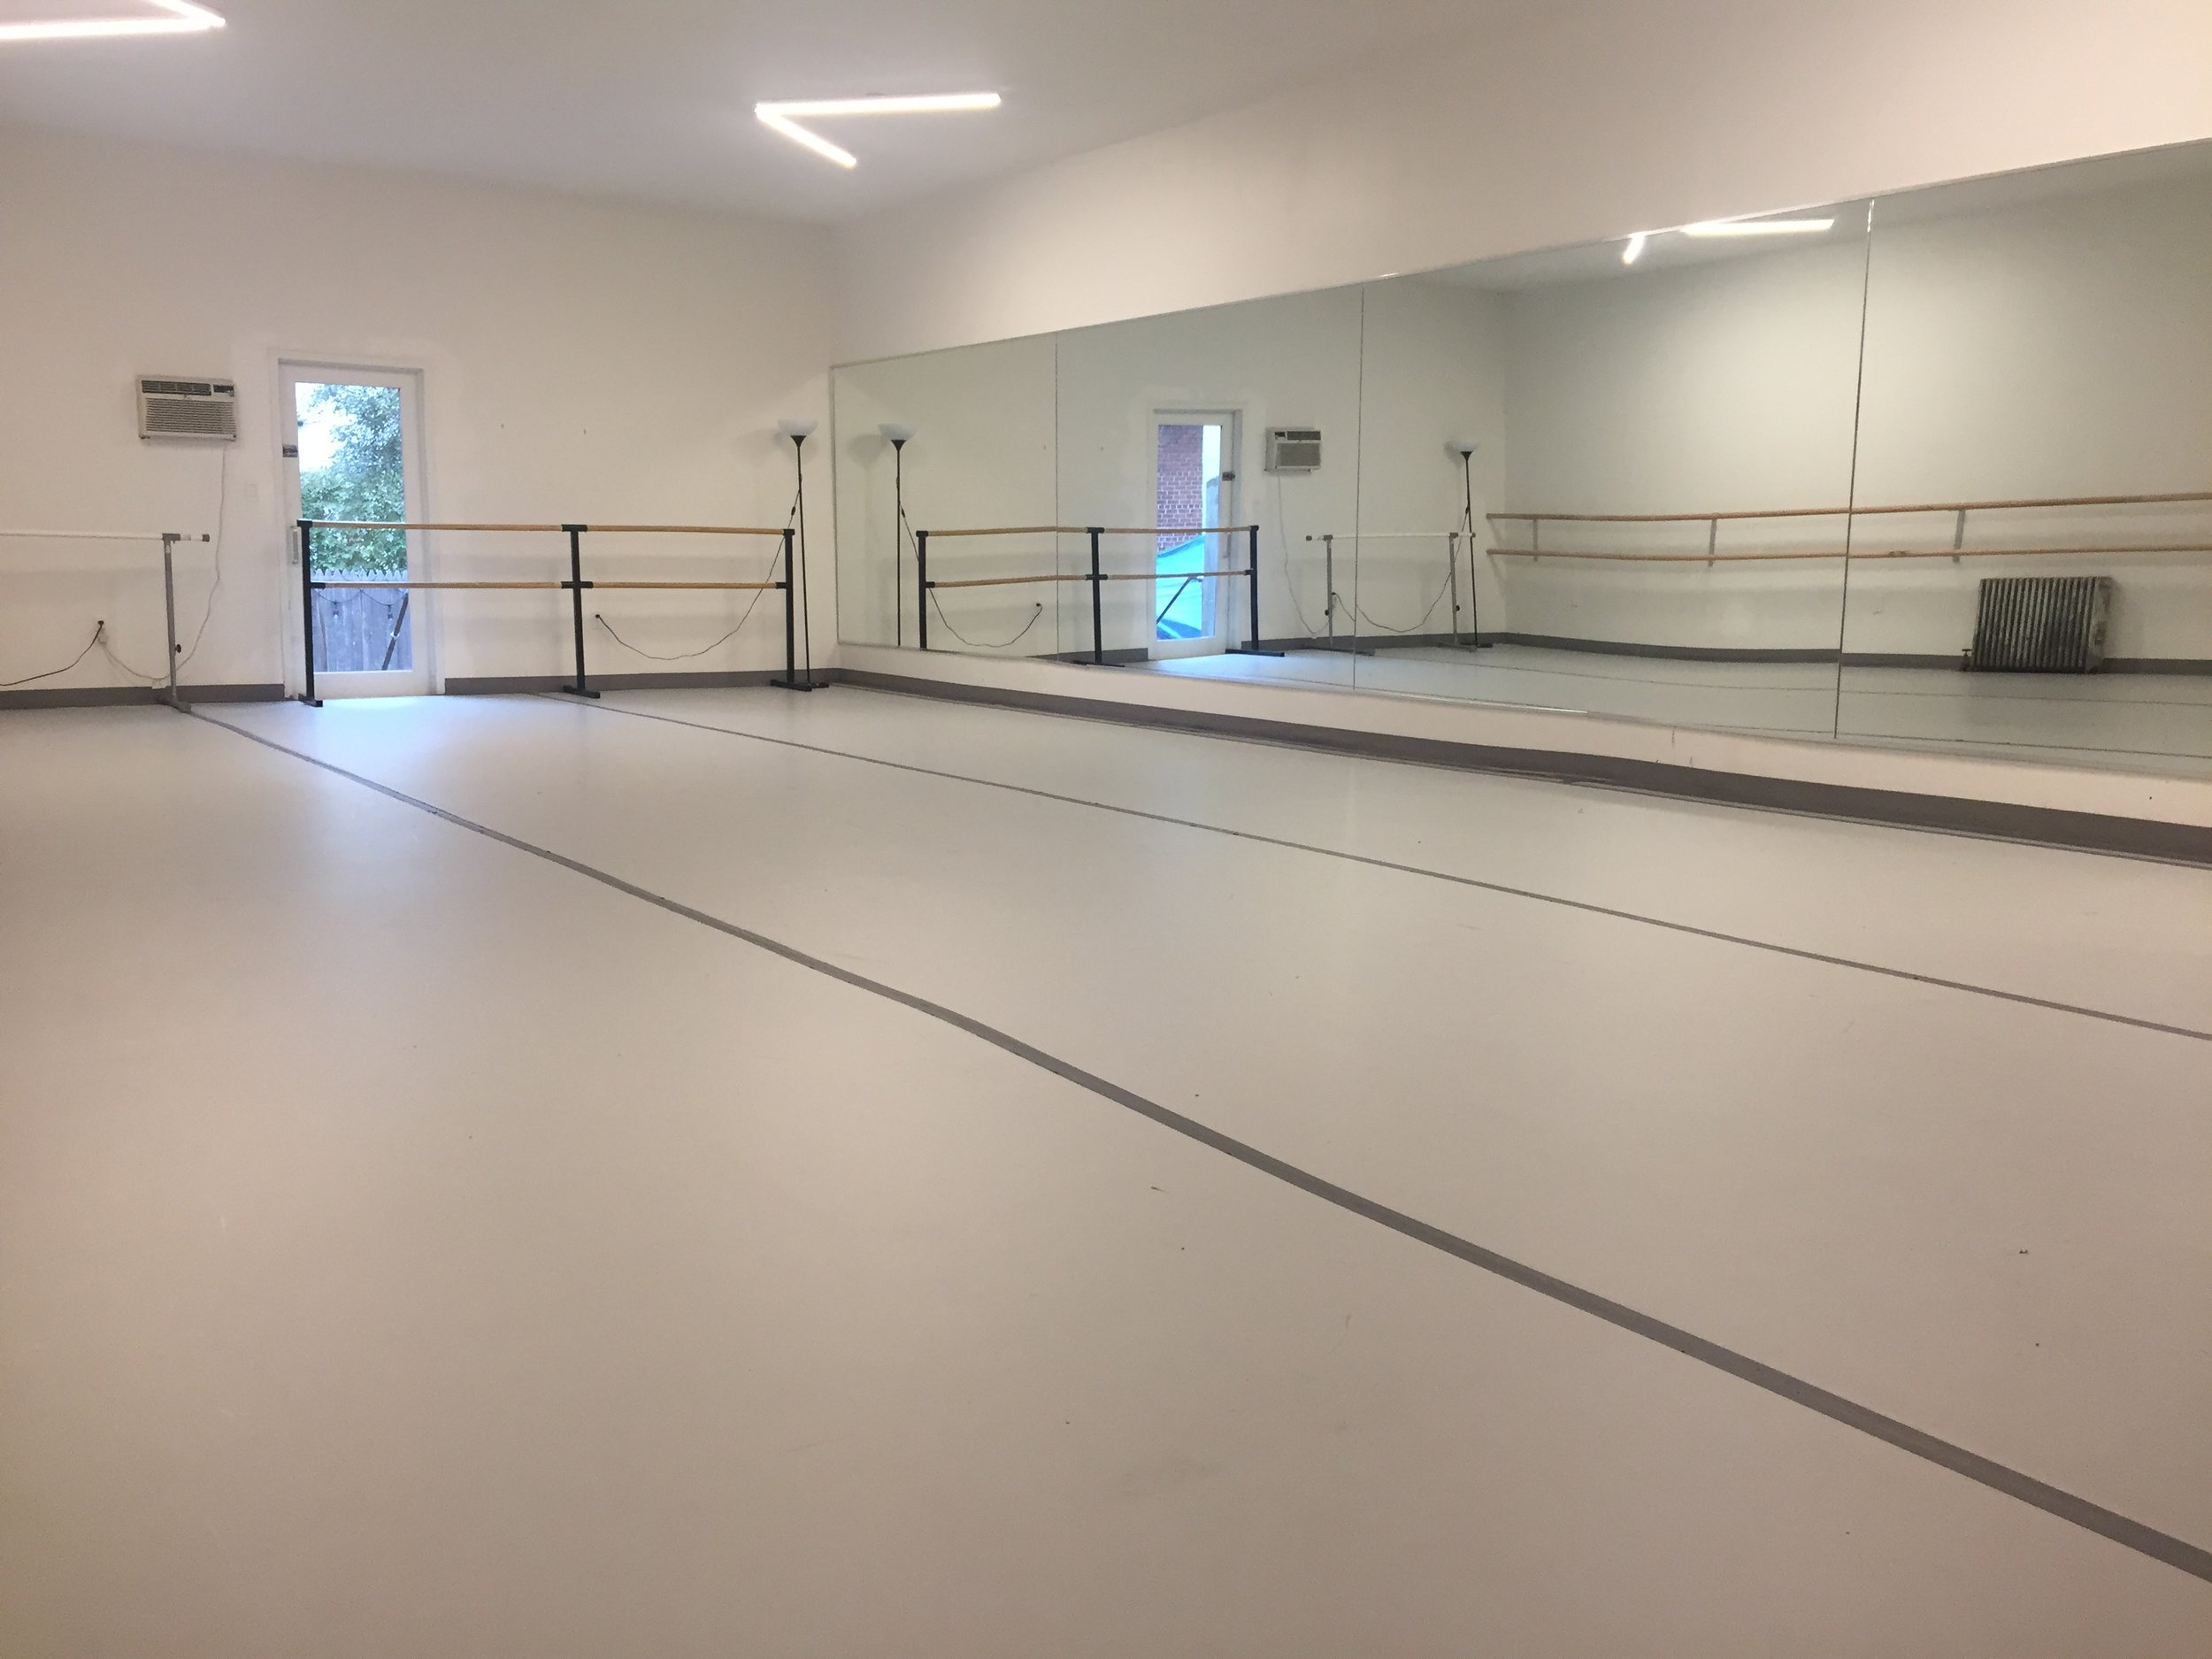 Cora's 800 square foot rehearsal space is available for rental for rehearsal, performances, classes and events. Email info@coradance.org or call 718-858-2520 for details.